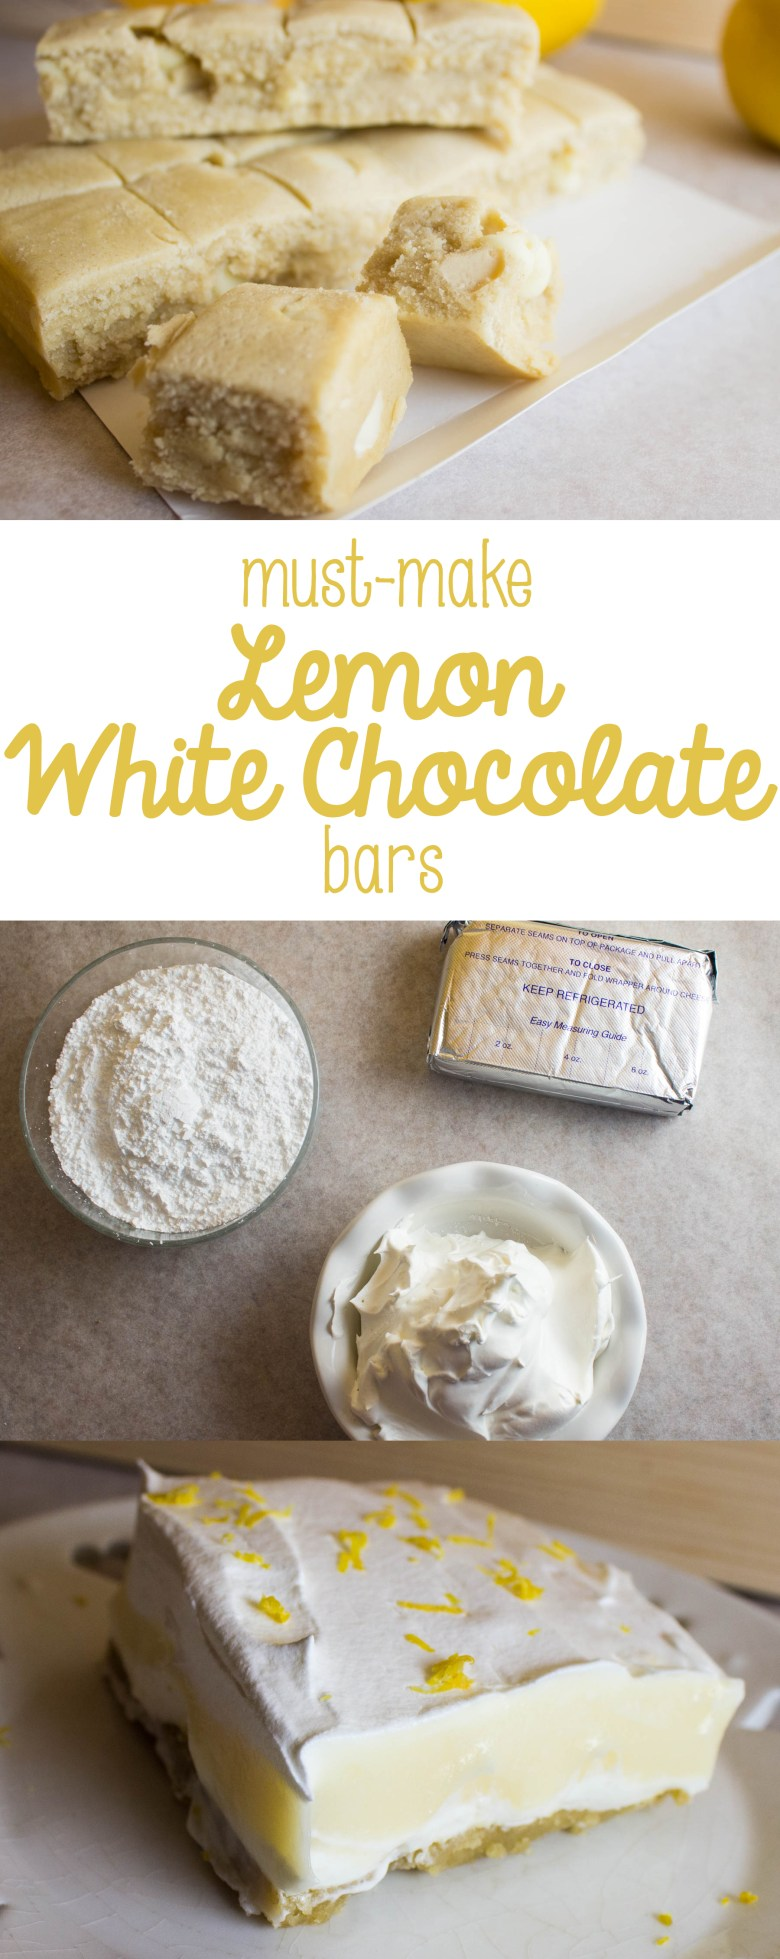 The Easter season can be crazy busy... drop in guests, fitting meals between egg hunts and events and beautiful weather. Make life easier at Easter by getting your #EasterEssentials taken care of with Nestle! Try these must-make lemon white chocolate bars, using pudding, whipped cream, and lemon white chocolate chip Toll House cookie dough! They're quick and easy, so you can get back to your busy season. #ad